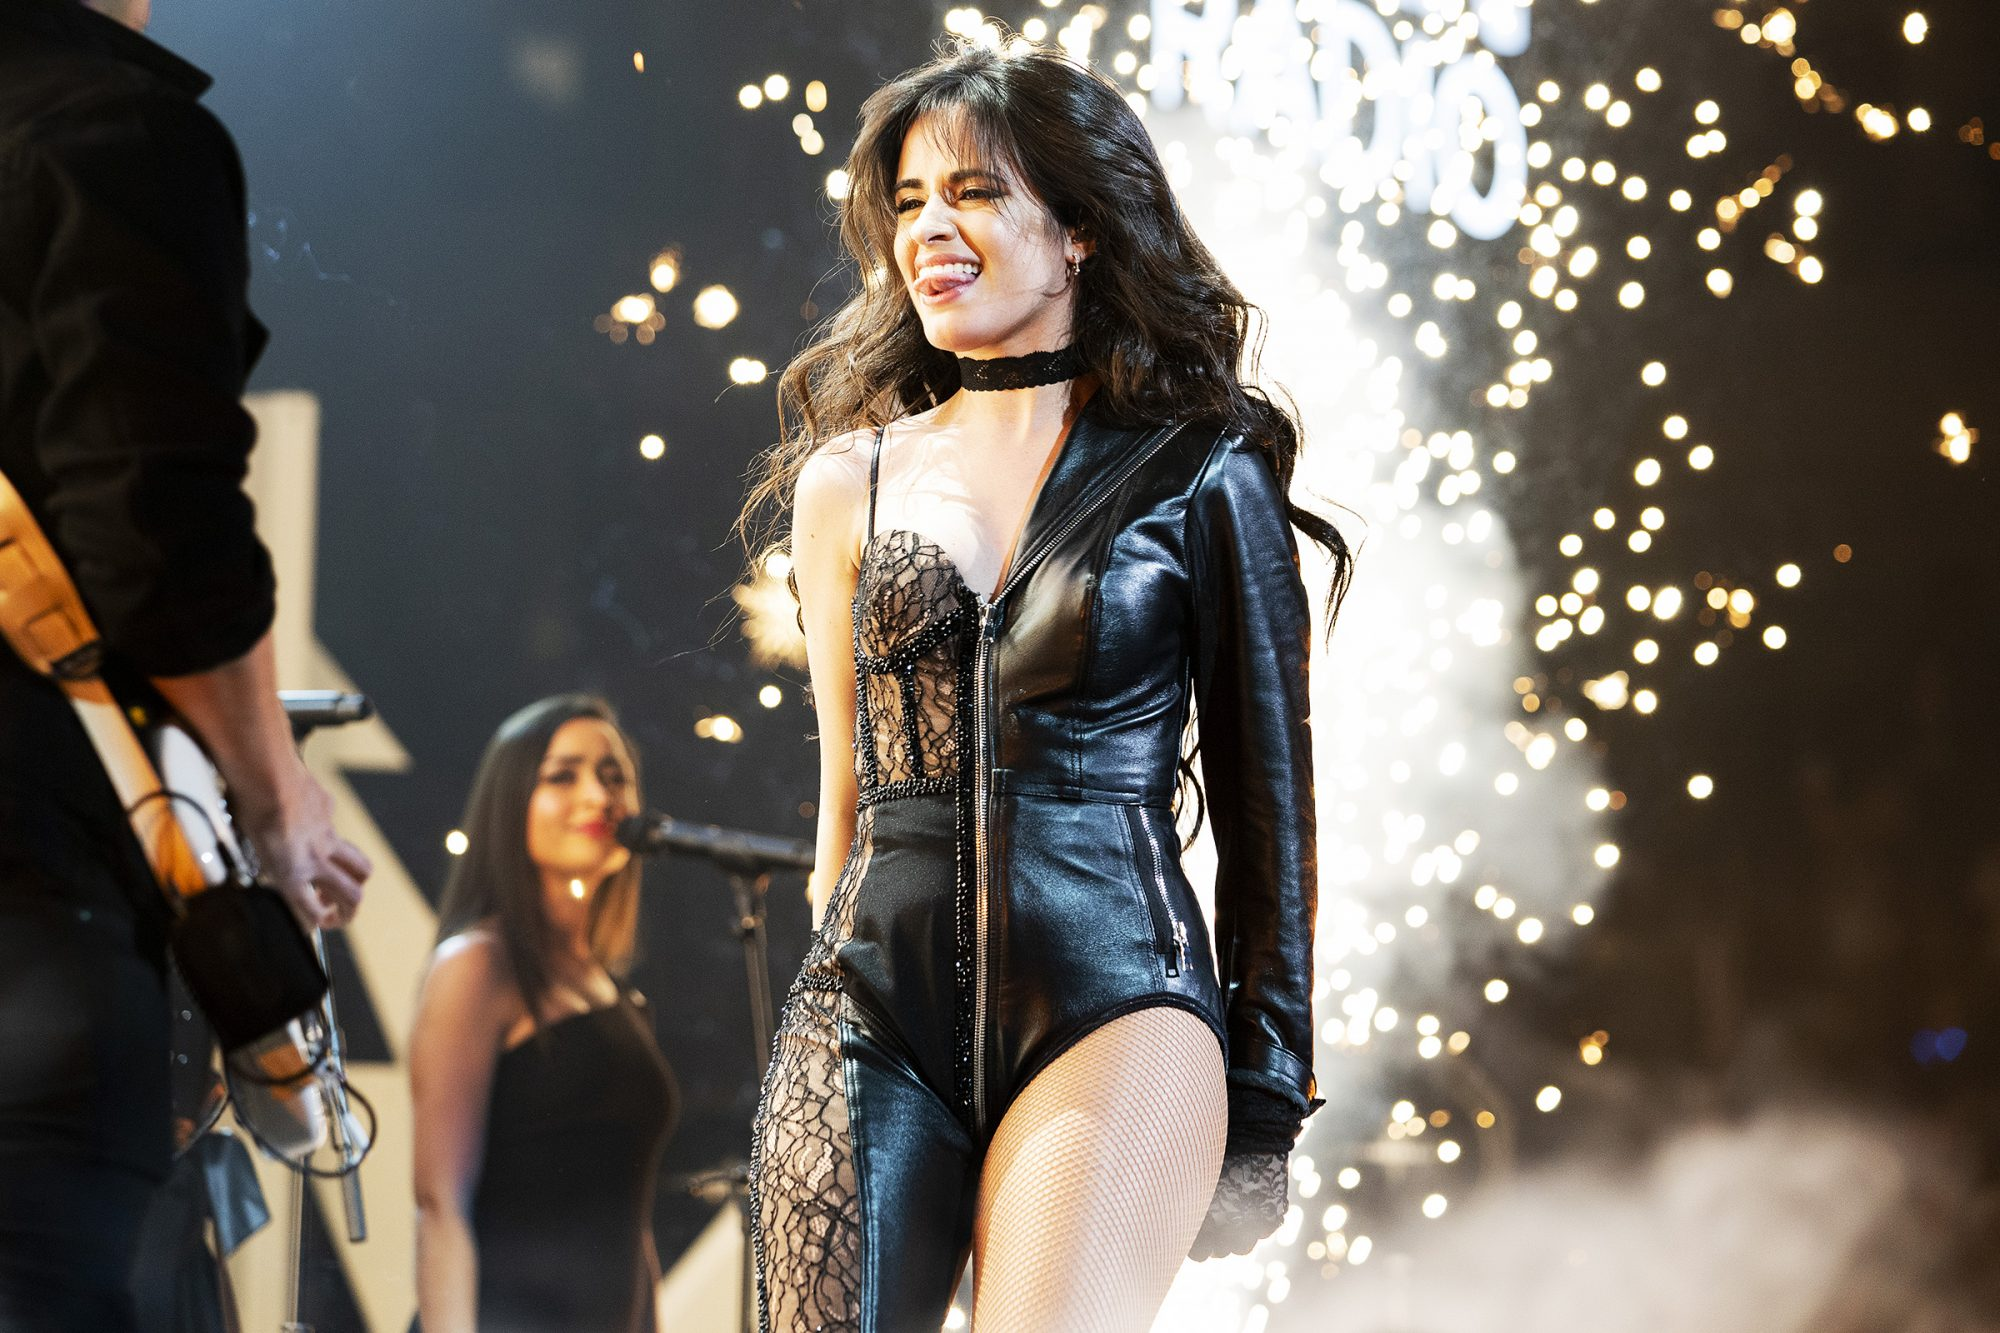 Camila Cabello performs during 106.1 KISS FM's Jingle Ball 2019 at Dickies Arena on December 03, 2019